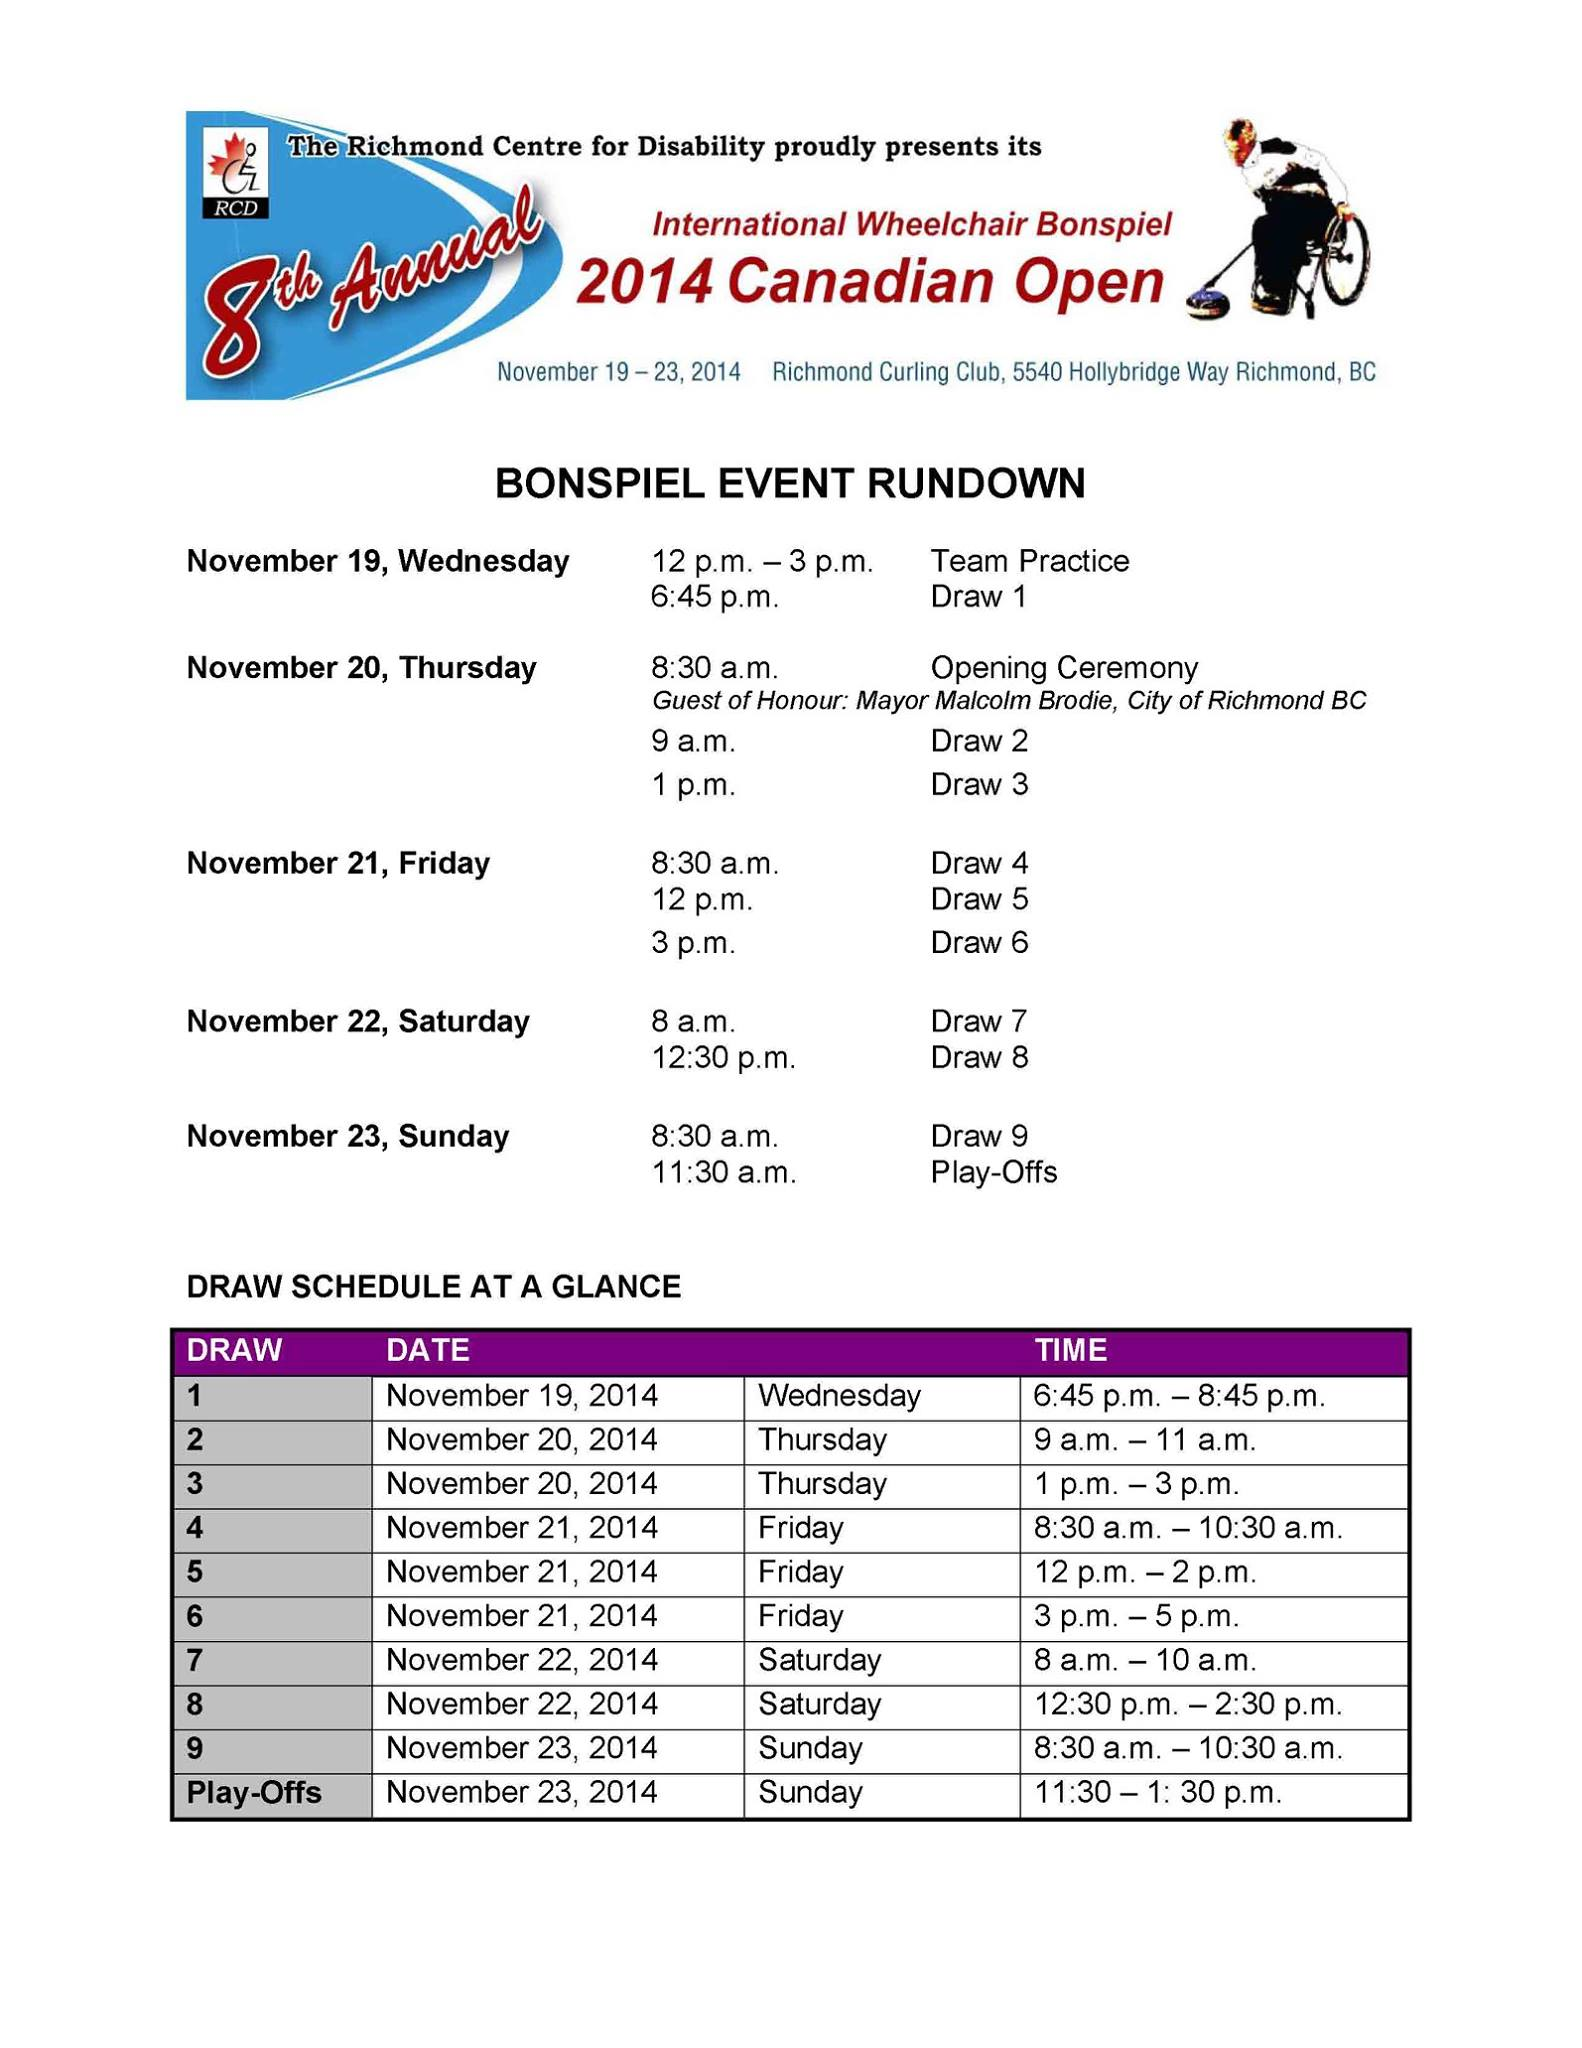 International Wheelchair Bonspiel 2104 Canadian Open schedule 2